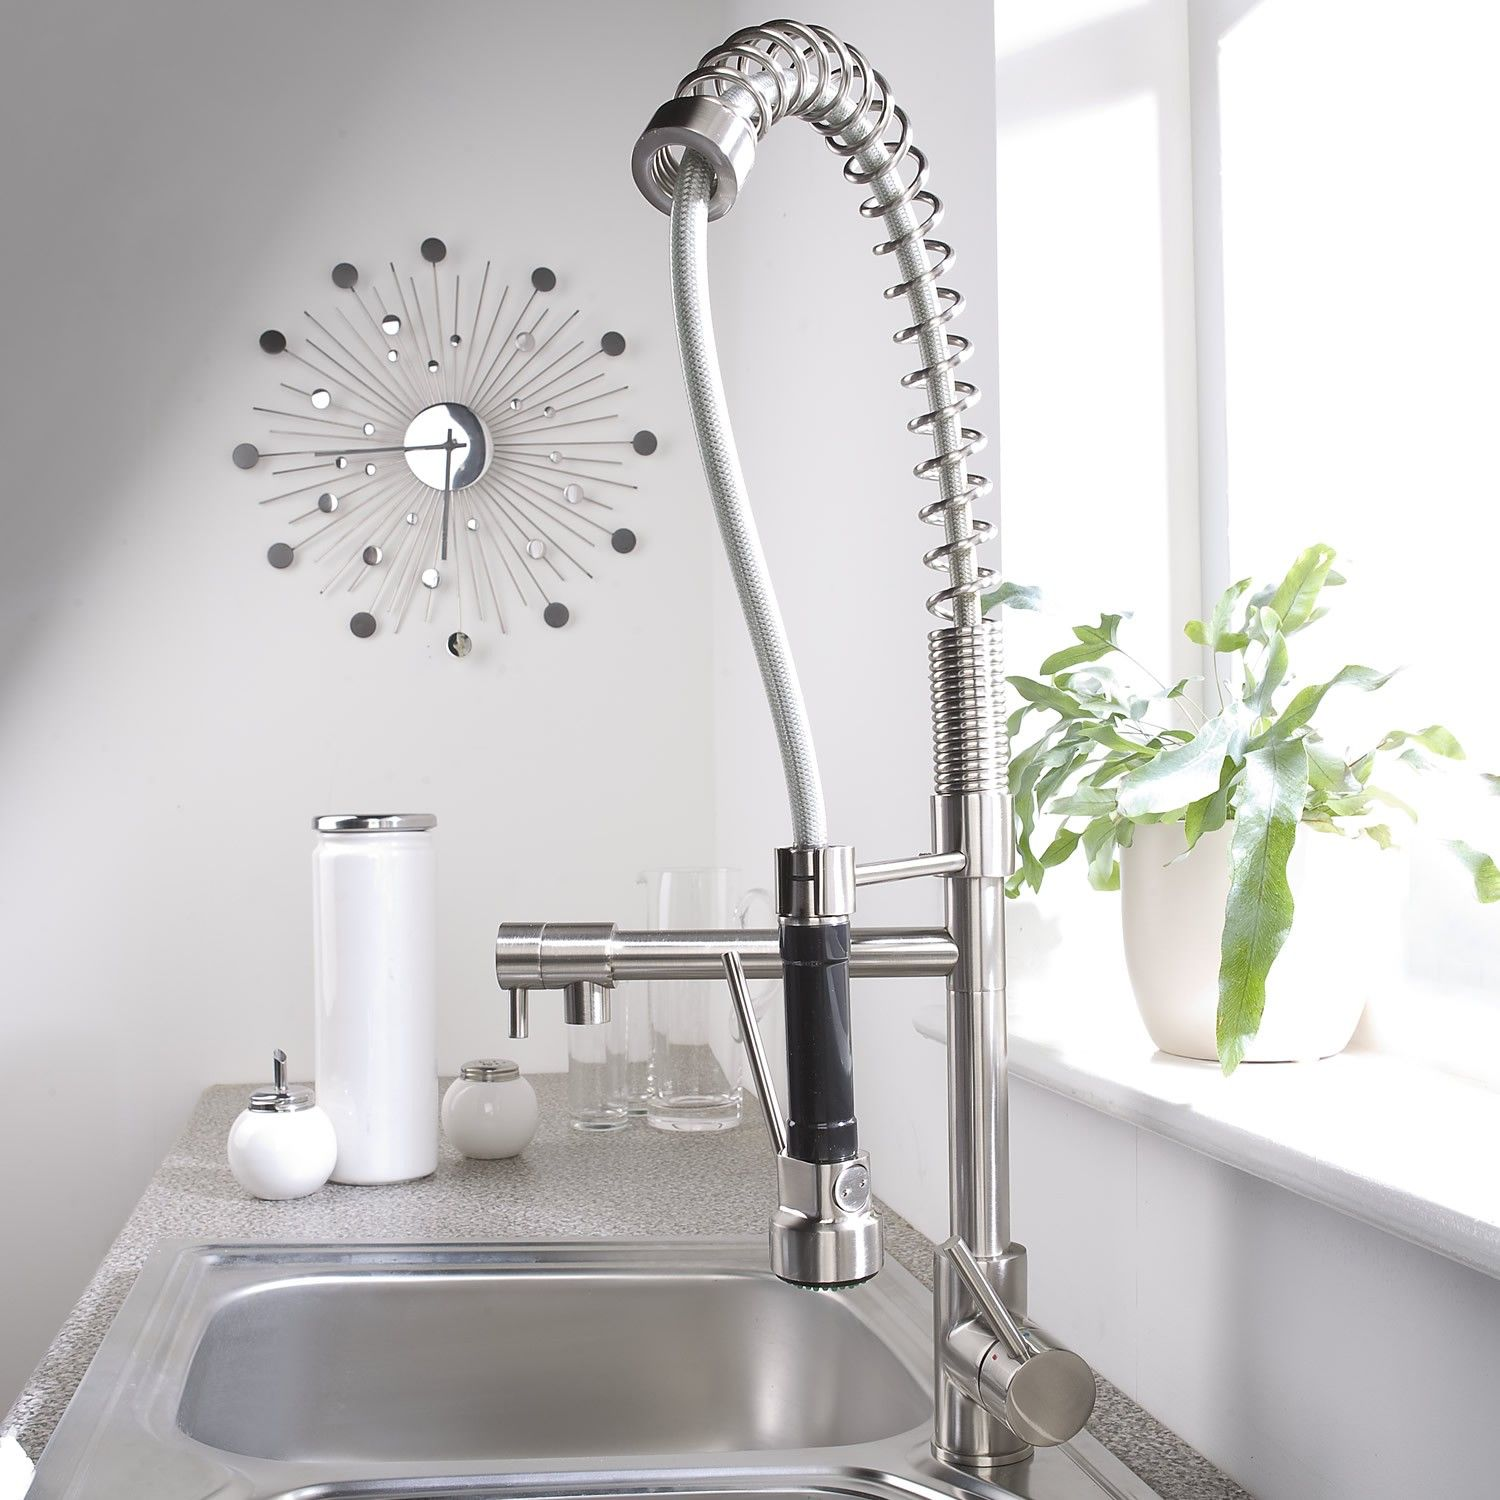 Kitchen, Chrome Kitchen Faucet With Spray And Decorative Wall Clock ...